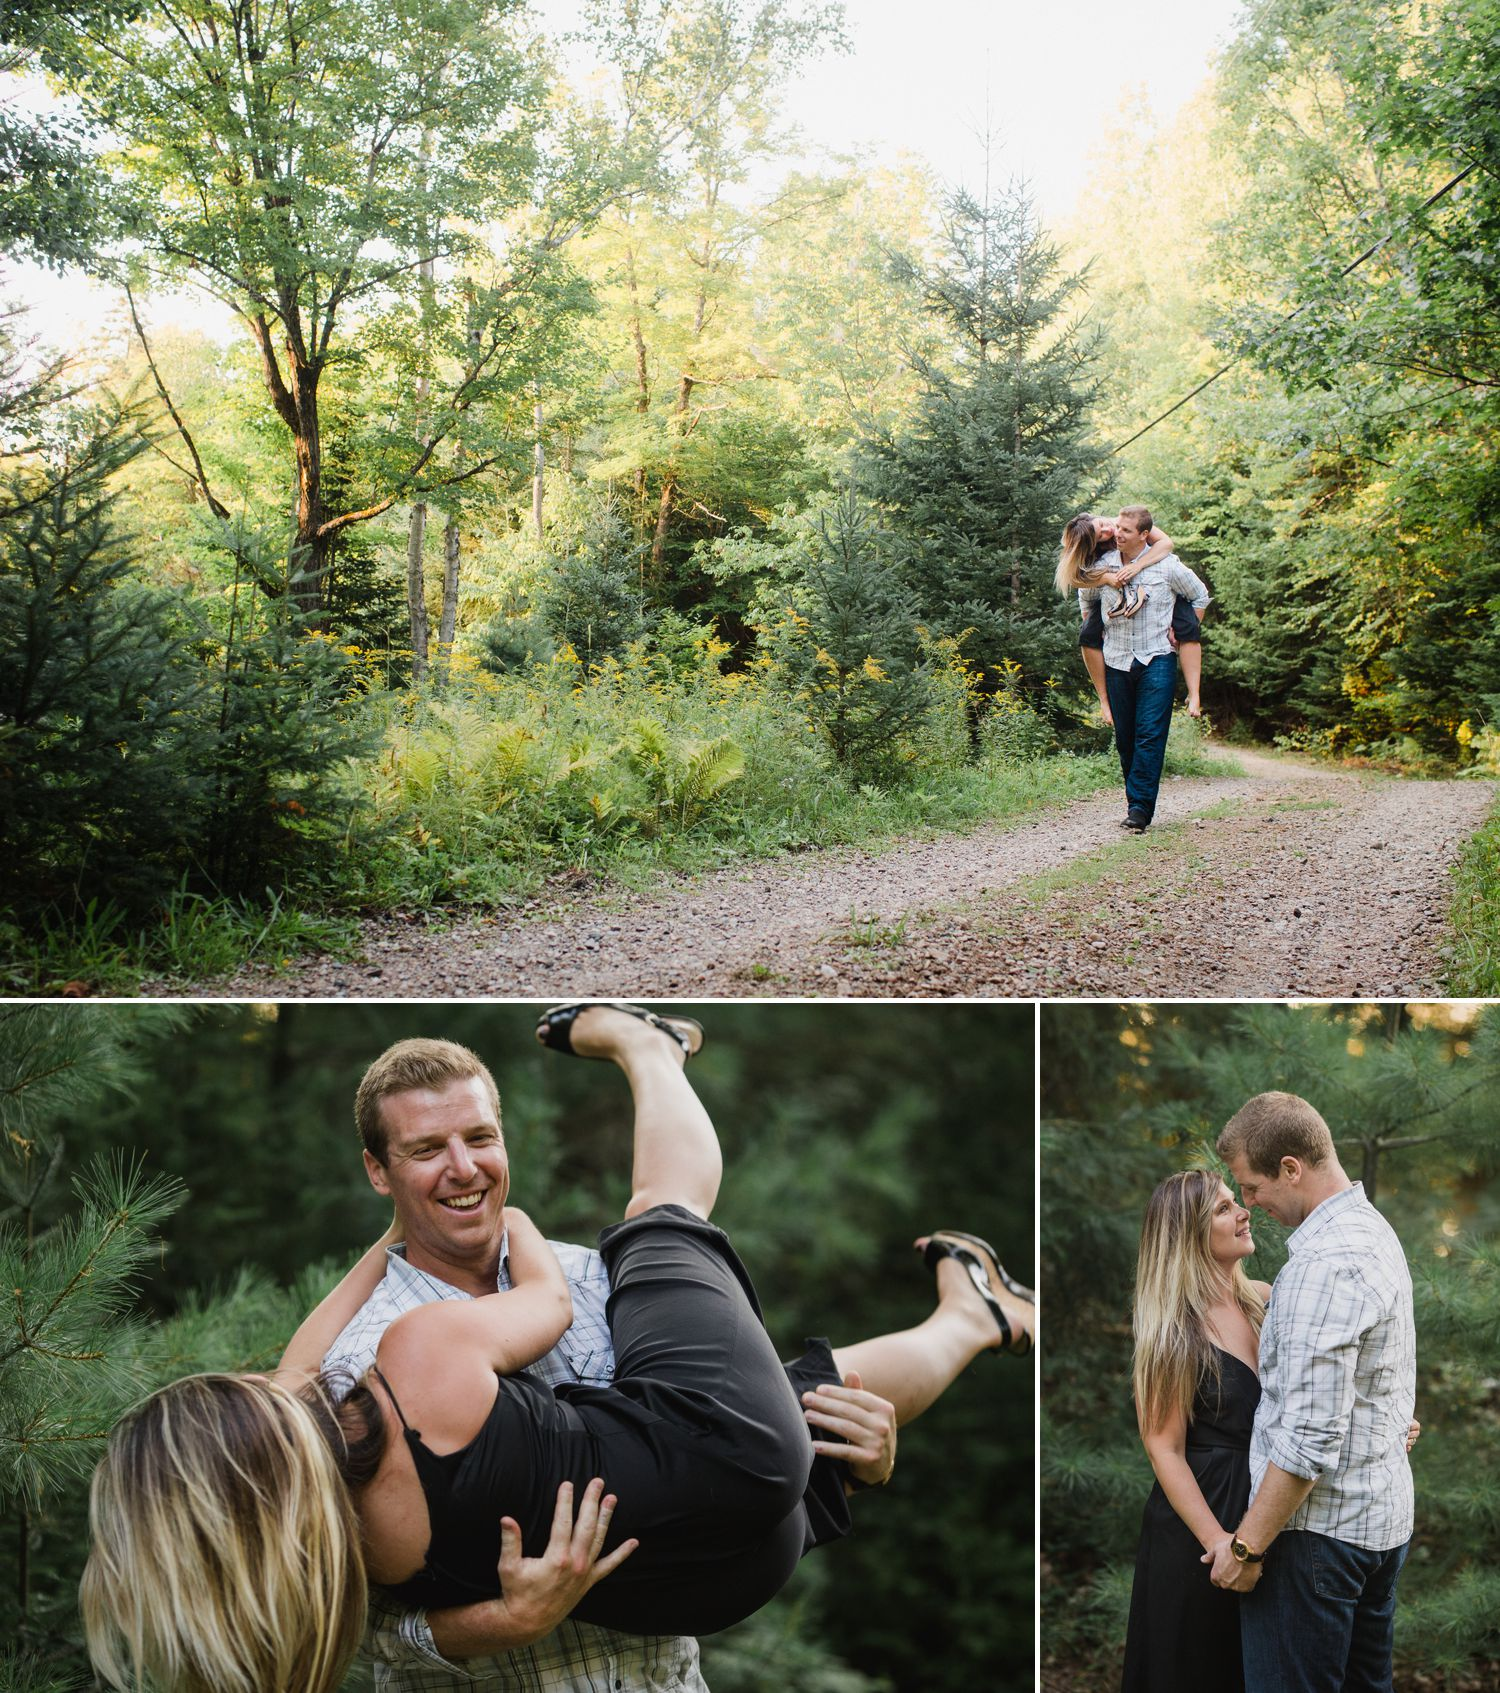 Steve carrying Ashley down the trail to their cottage during their engagement shoot